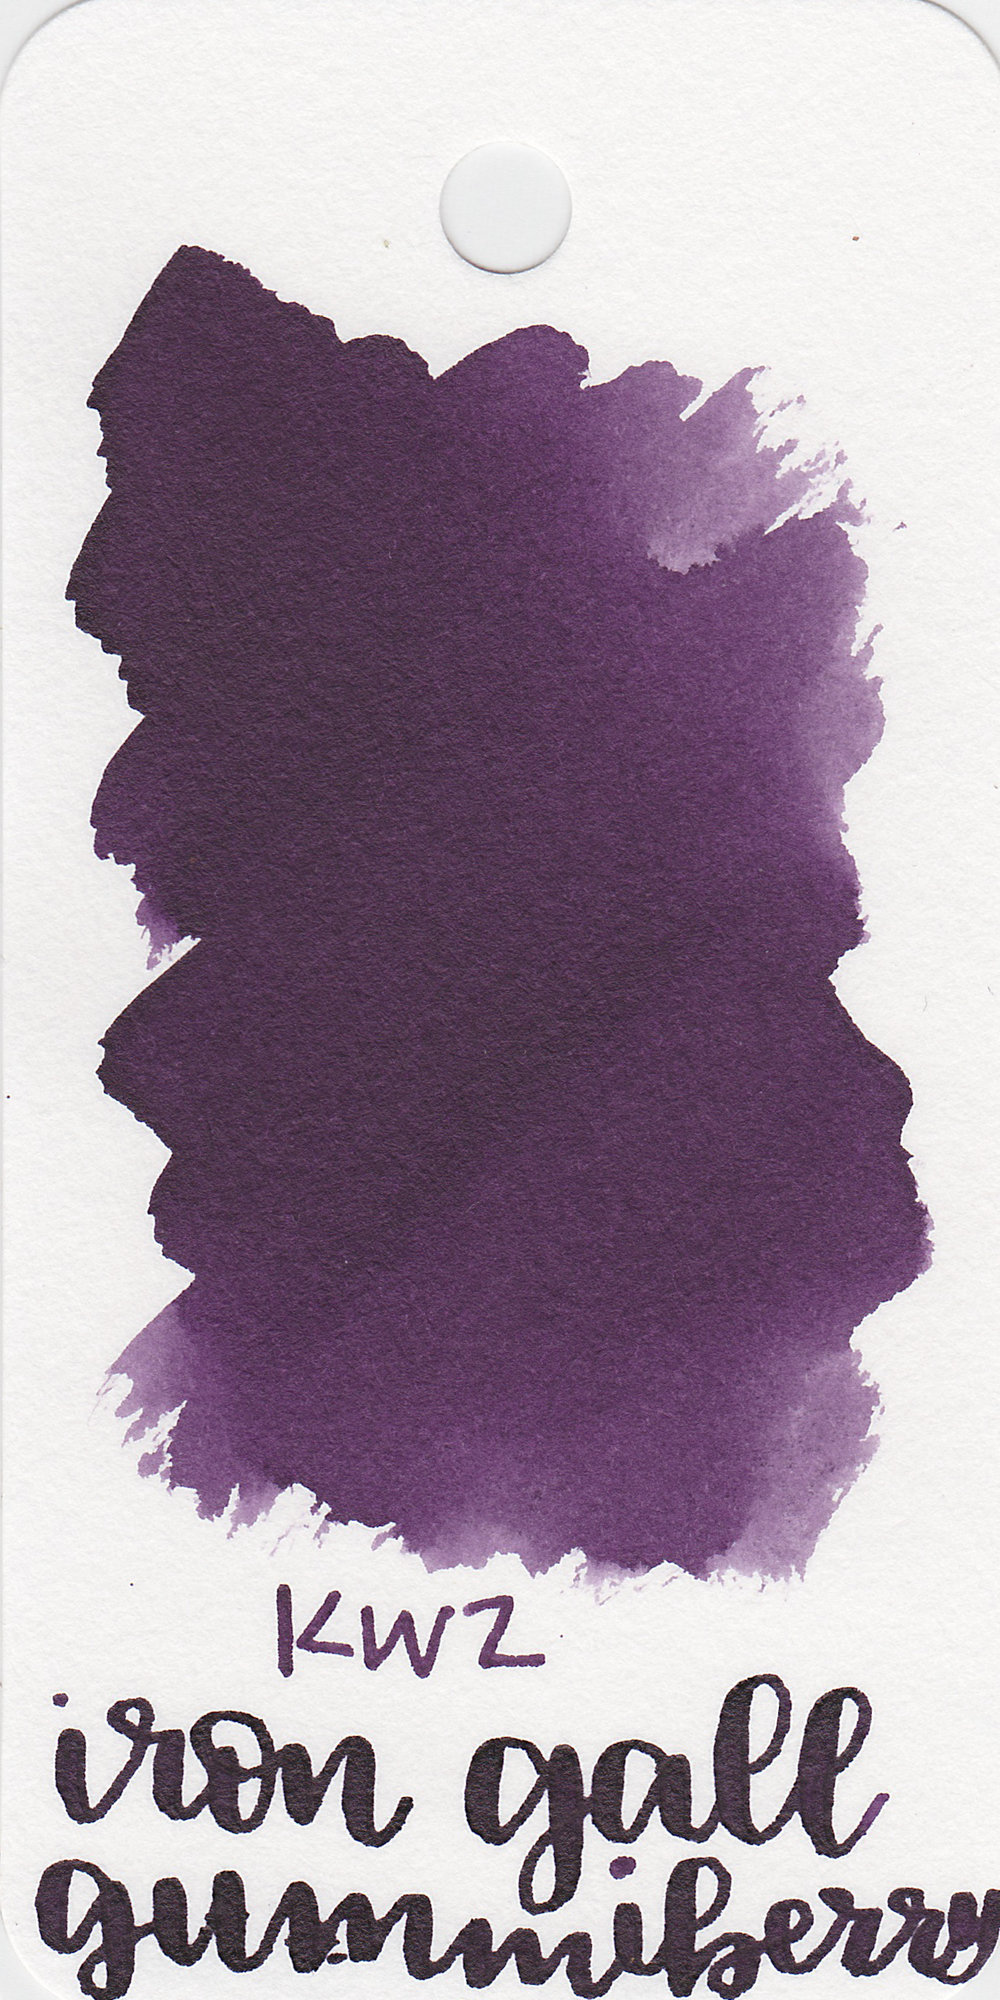 The color: - Iron Gall Gummiberry is a dark, saturated purple.